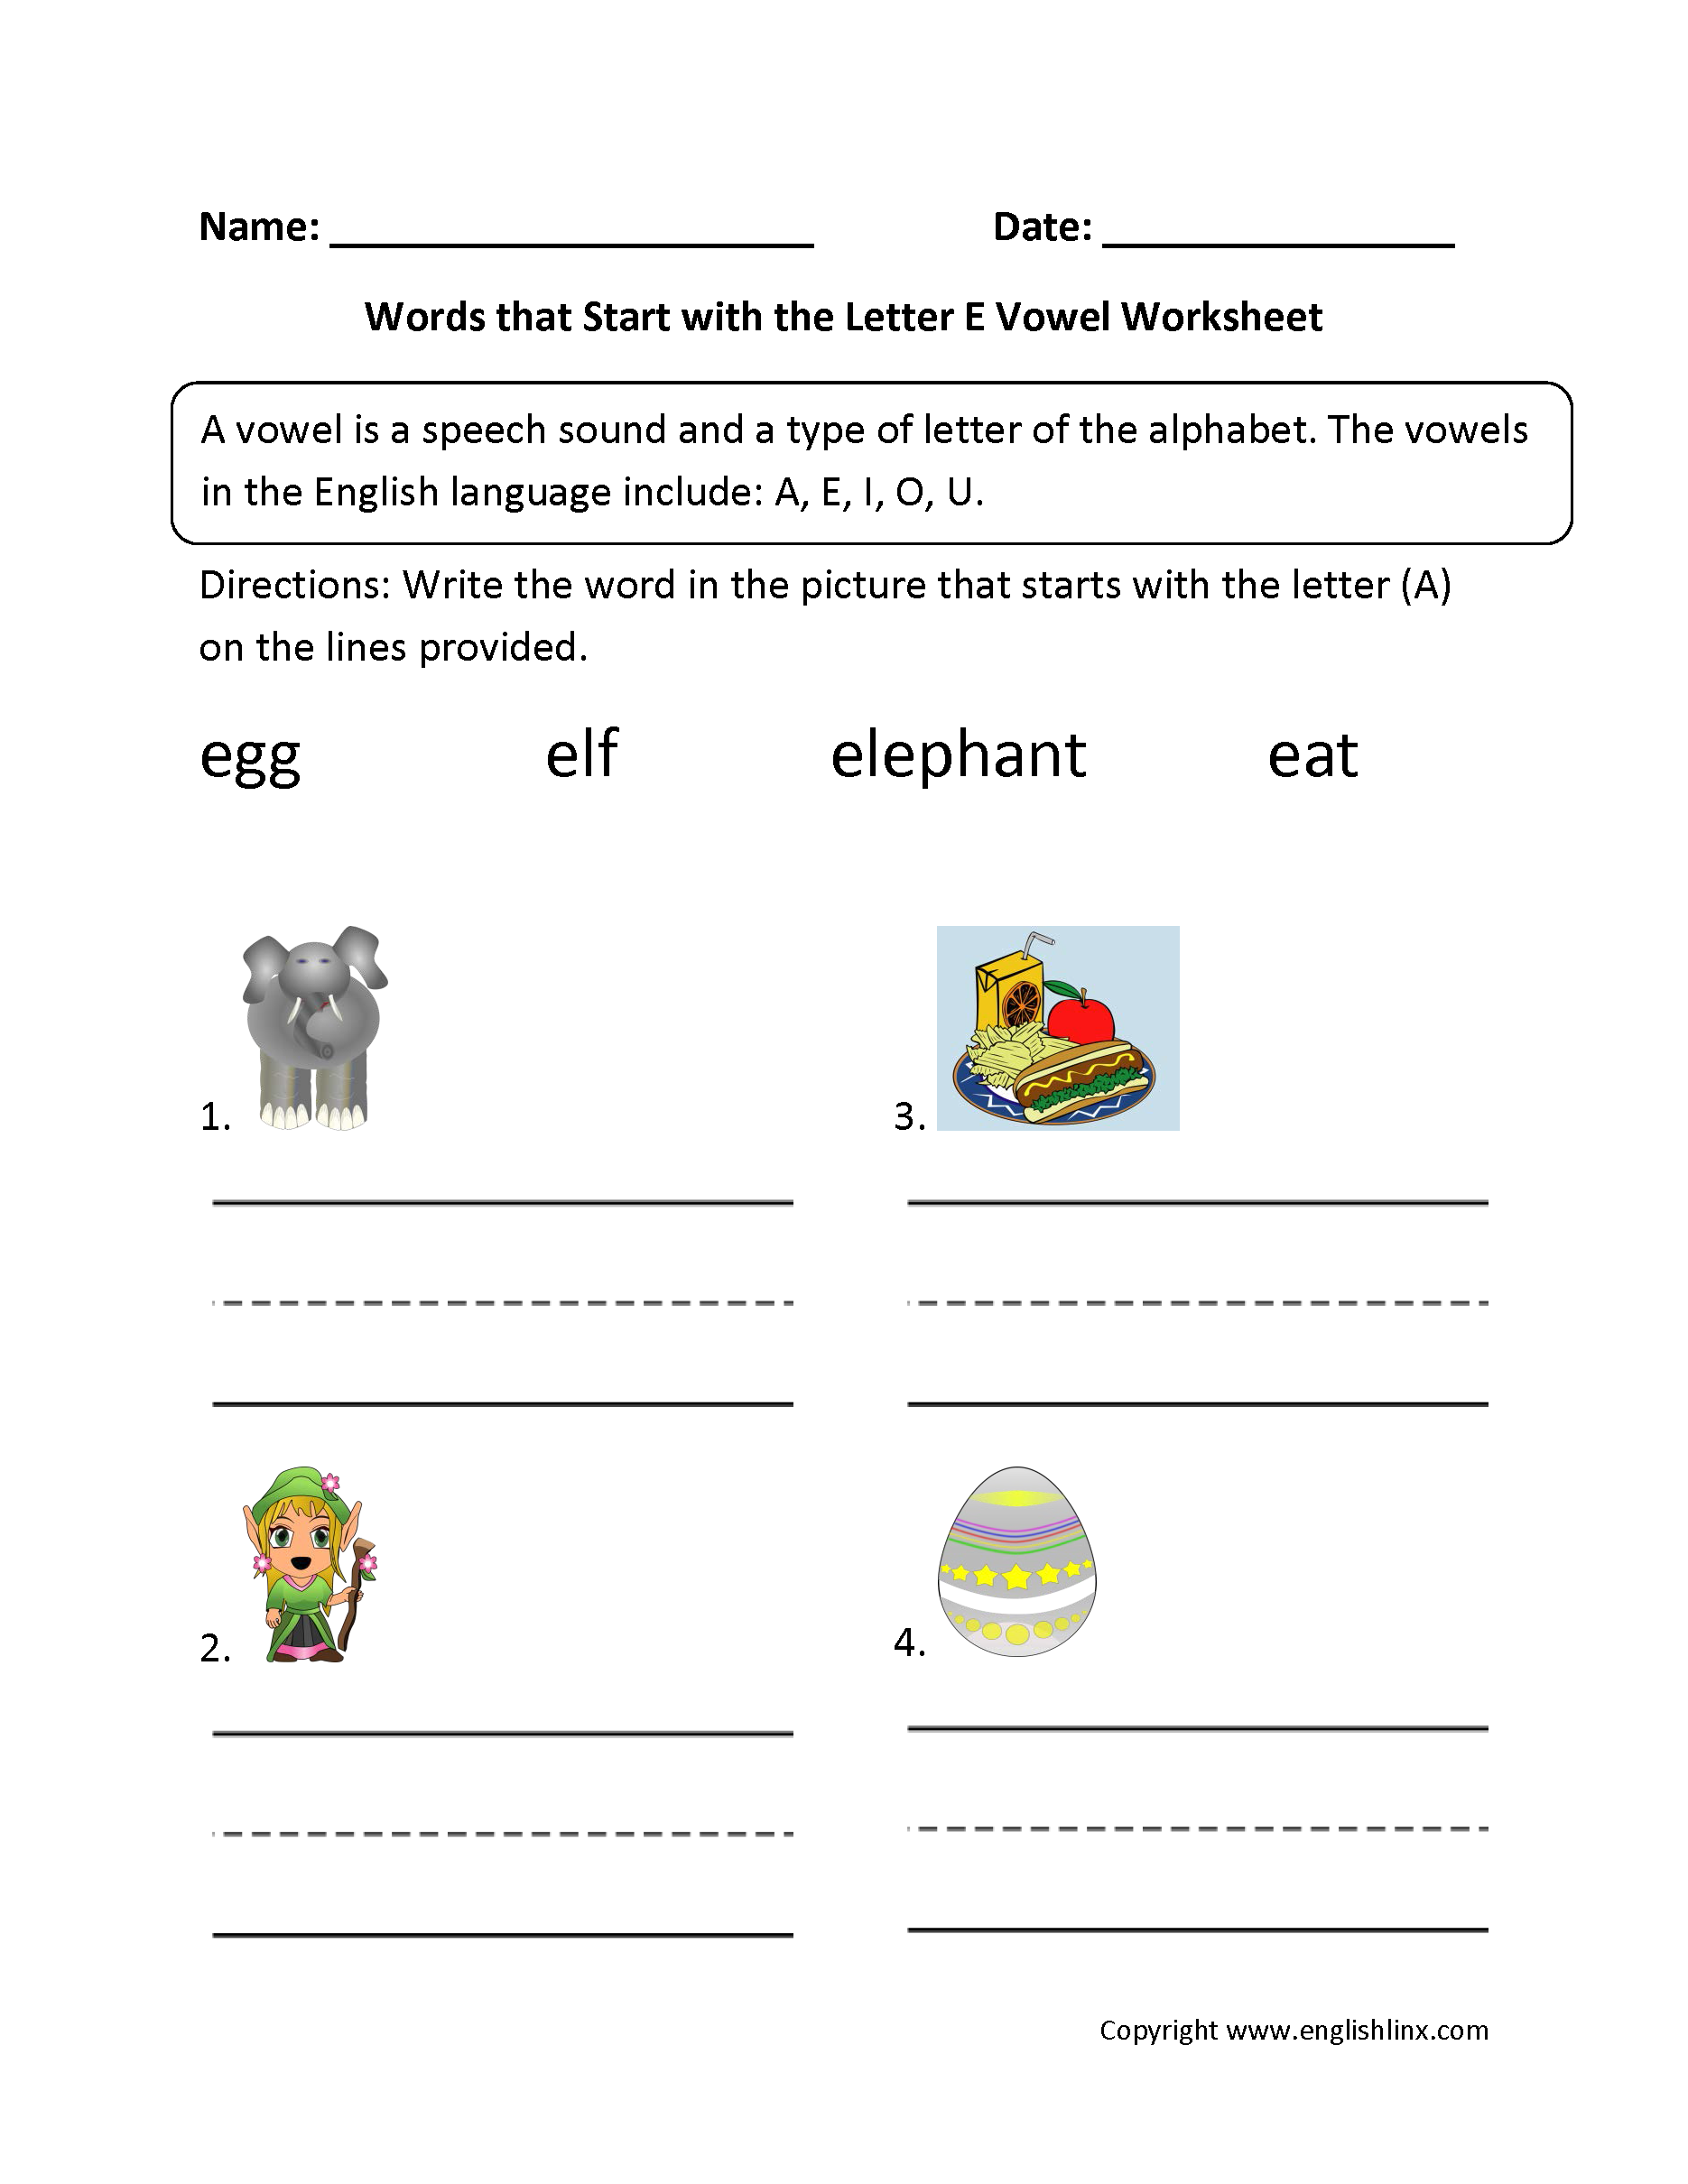 Words Start Letter E Vowel Worksheets